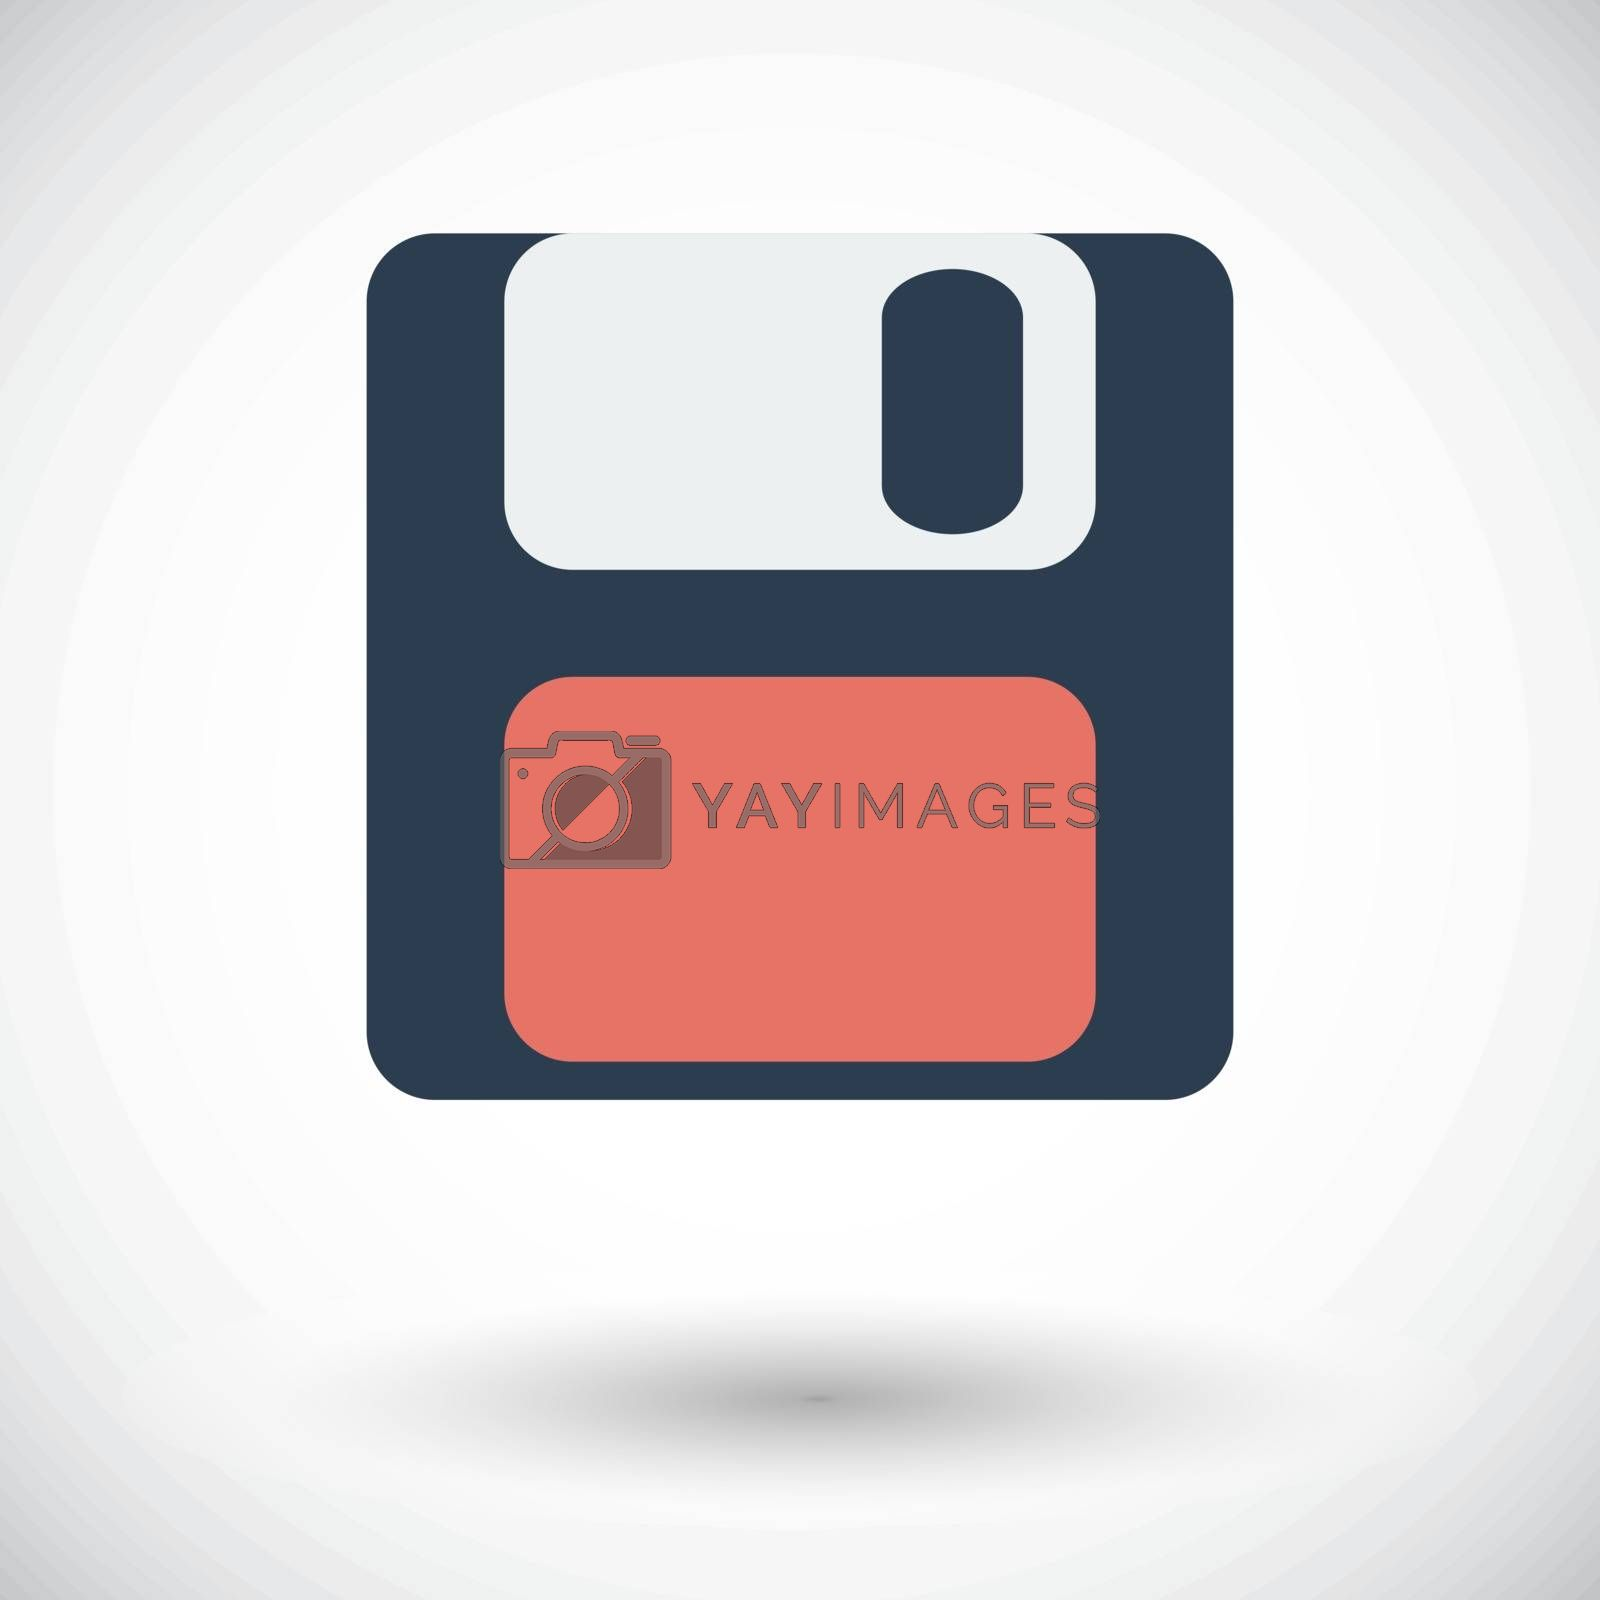 Magnetic floppy disc. Single flat icon on white background. Vector illustration.